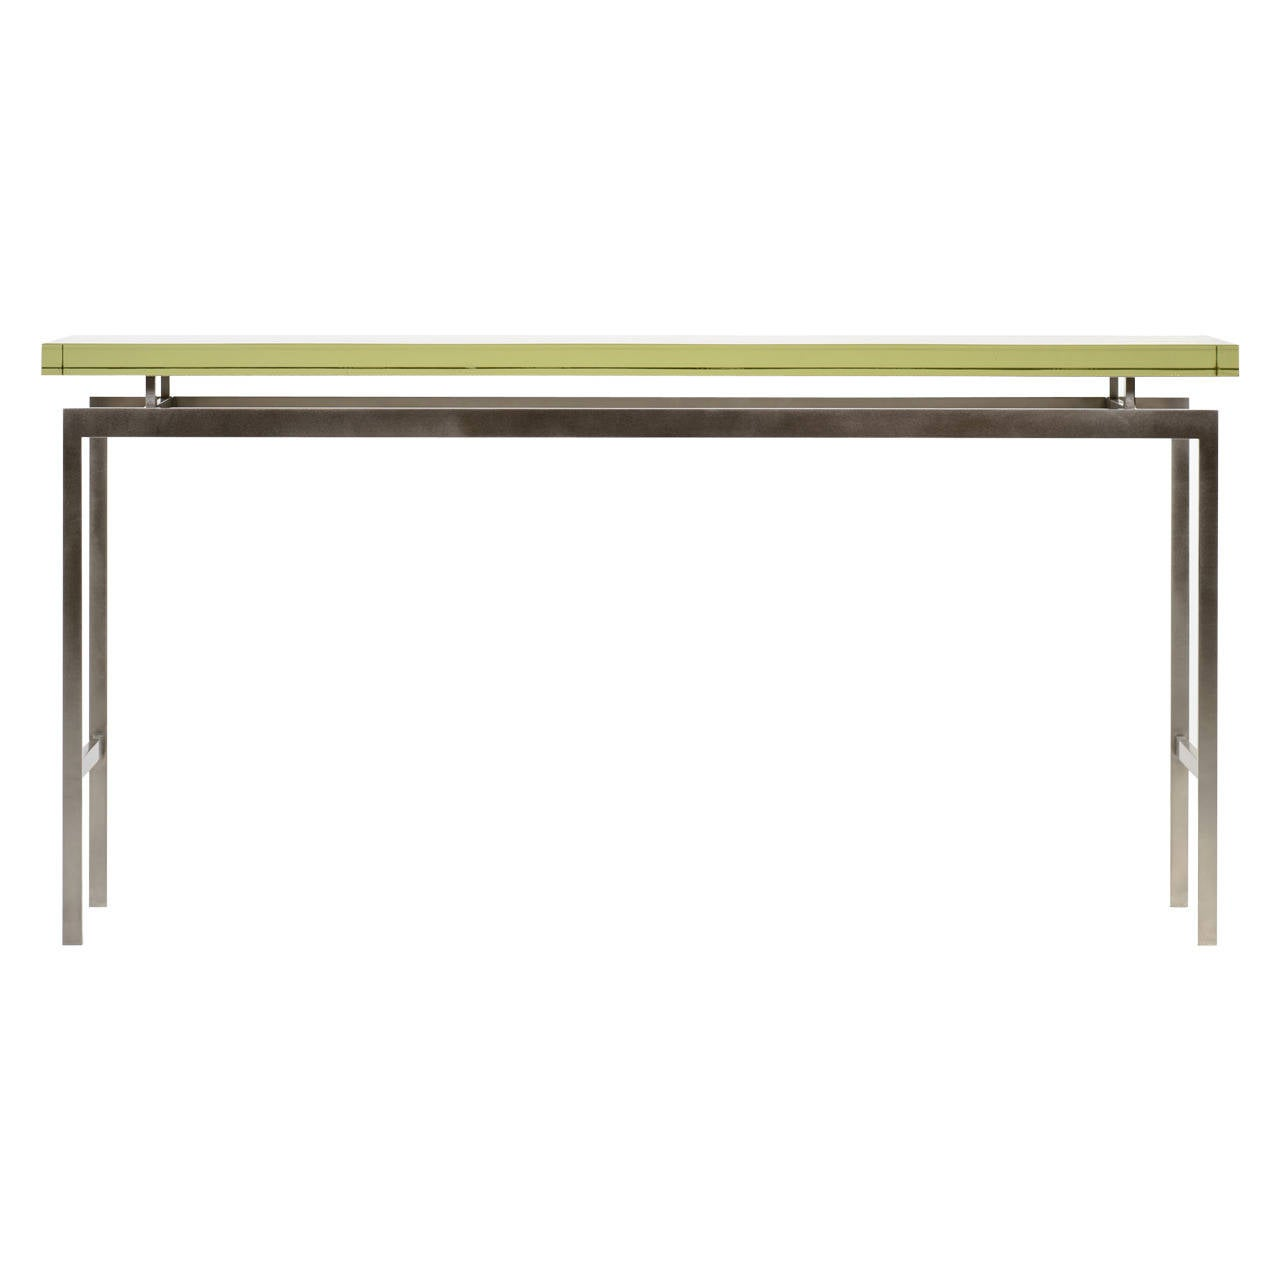 Duran Console or Sofa Table with Thick Mirrored Pyrex Glass Top and Nickel Base